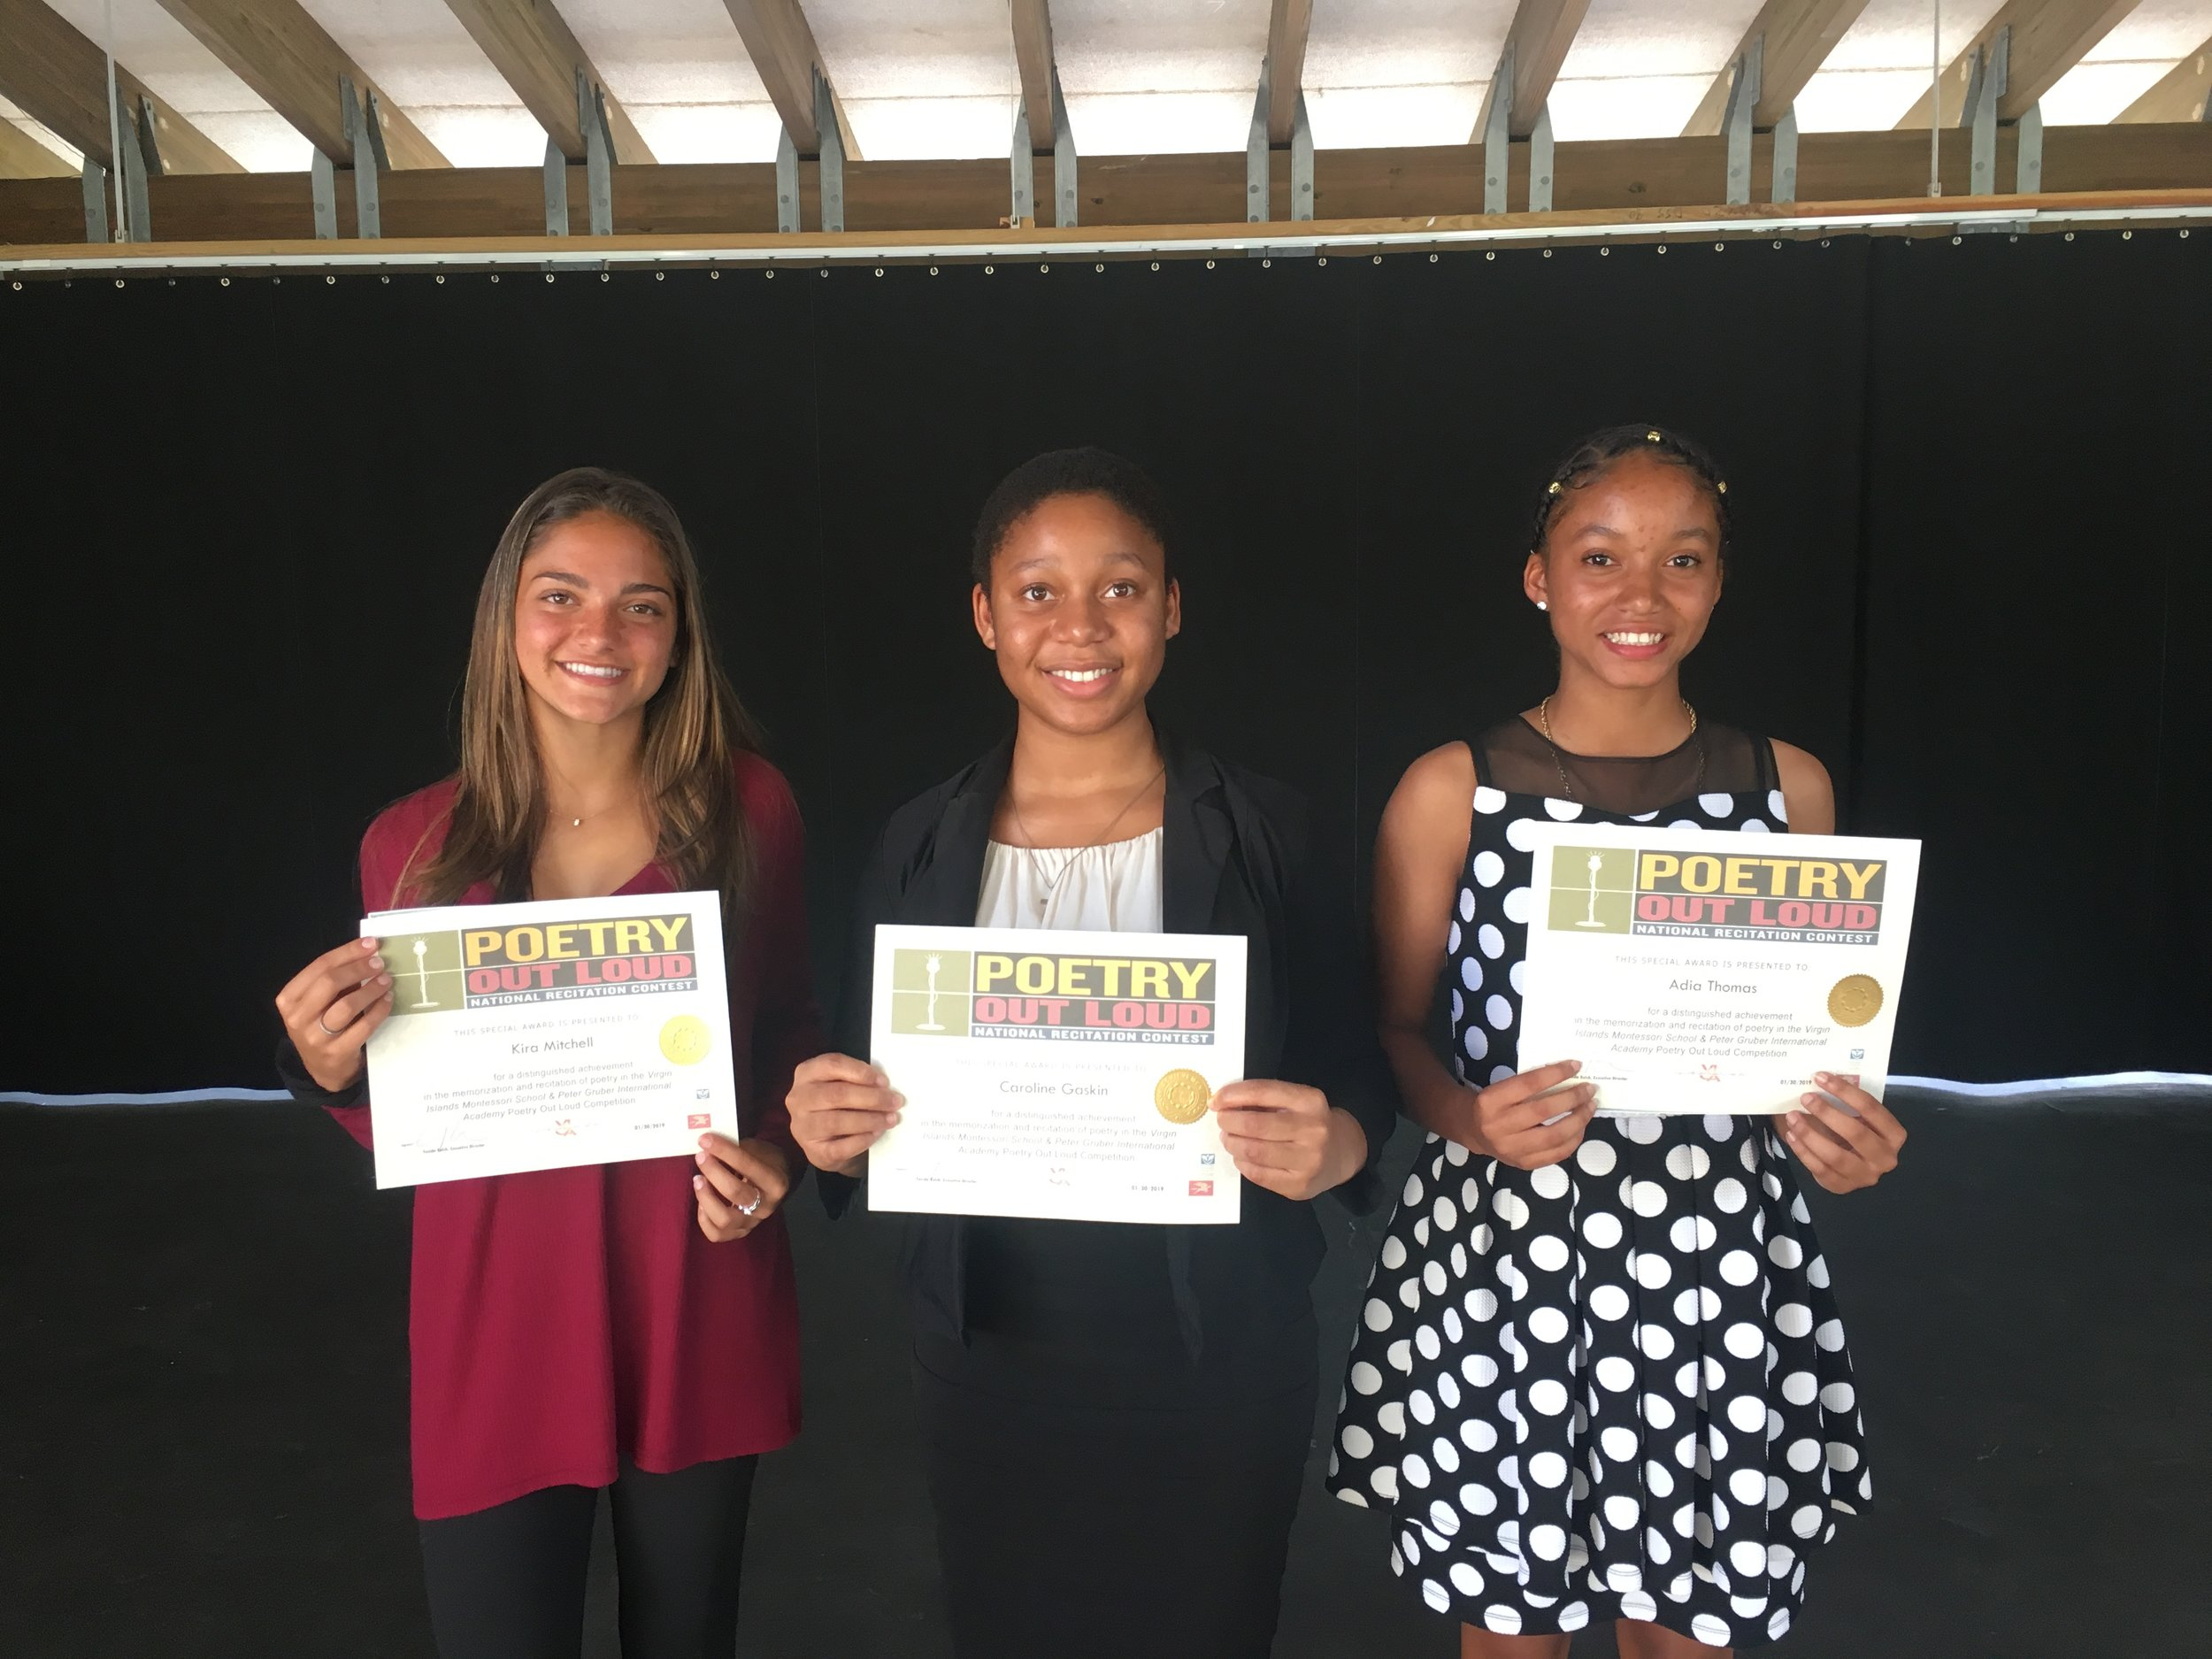 3rd place: Kira Mitchell, 2nd place: Caroline Gaskin, 1st place: Adia Thomas